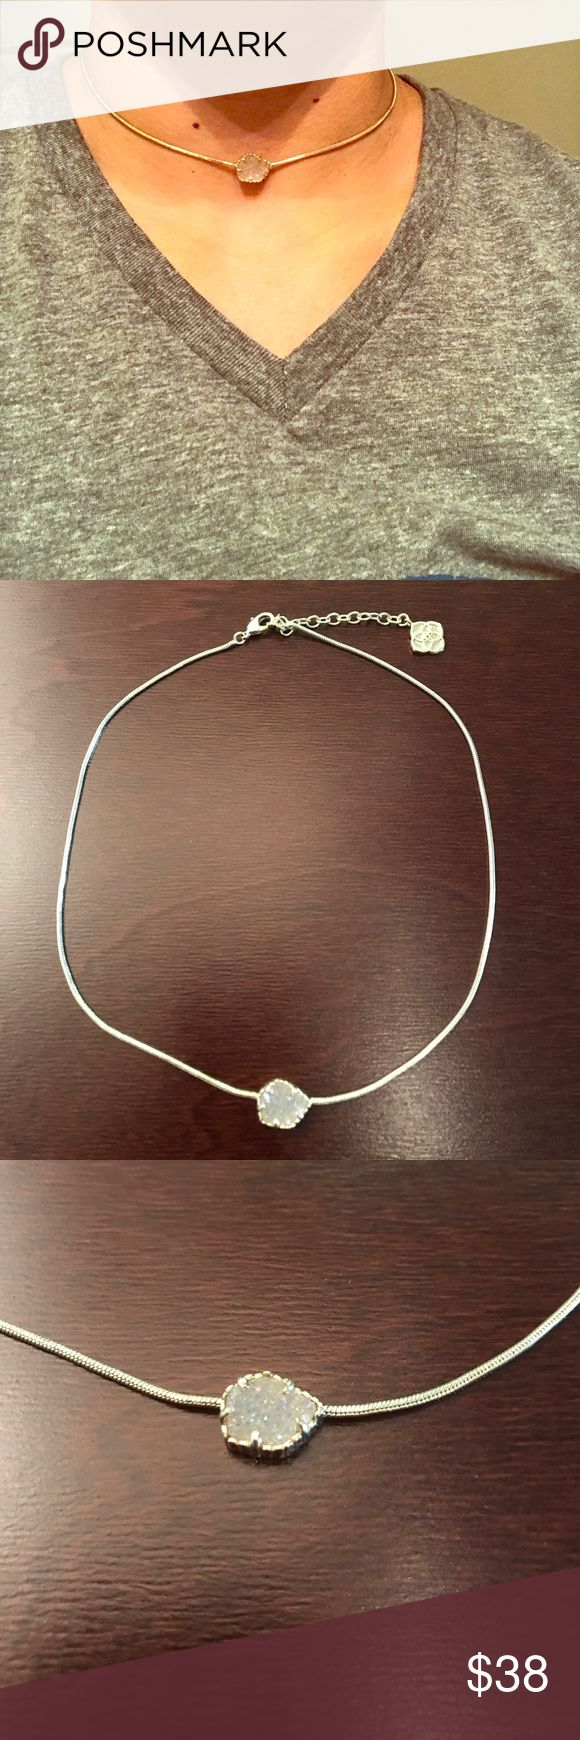 Kendra Scott Druzy gold choker w/ adjustable clasp Kendra Scott Druzy gold necklace with adjustable clasp. Worn a handful of times, like new and in great condition. Kendra Scott Jewelry Necklaces